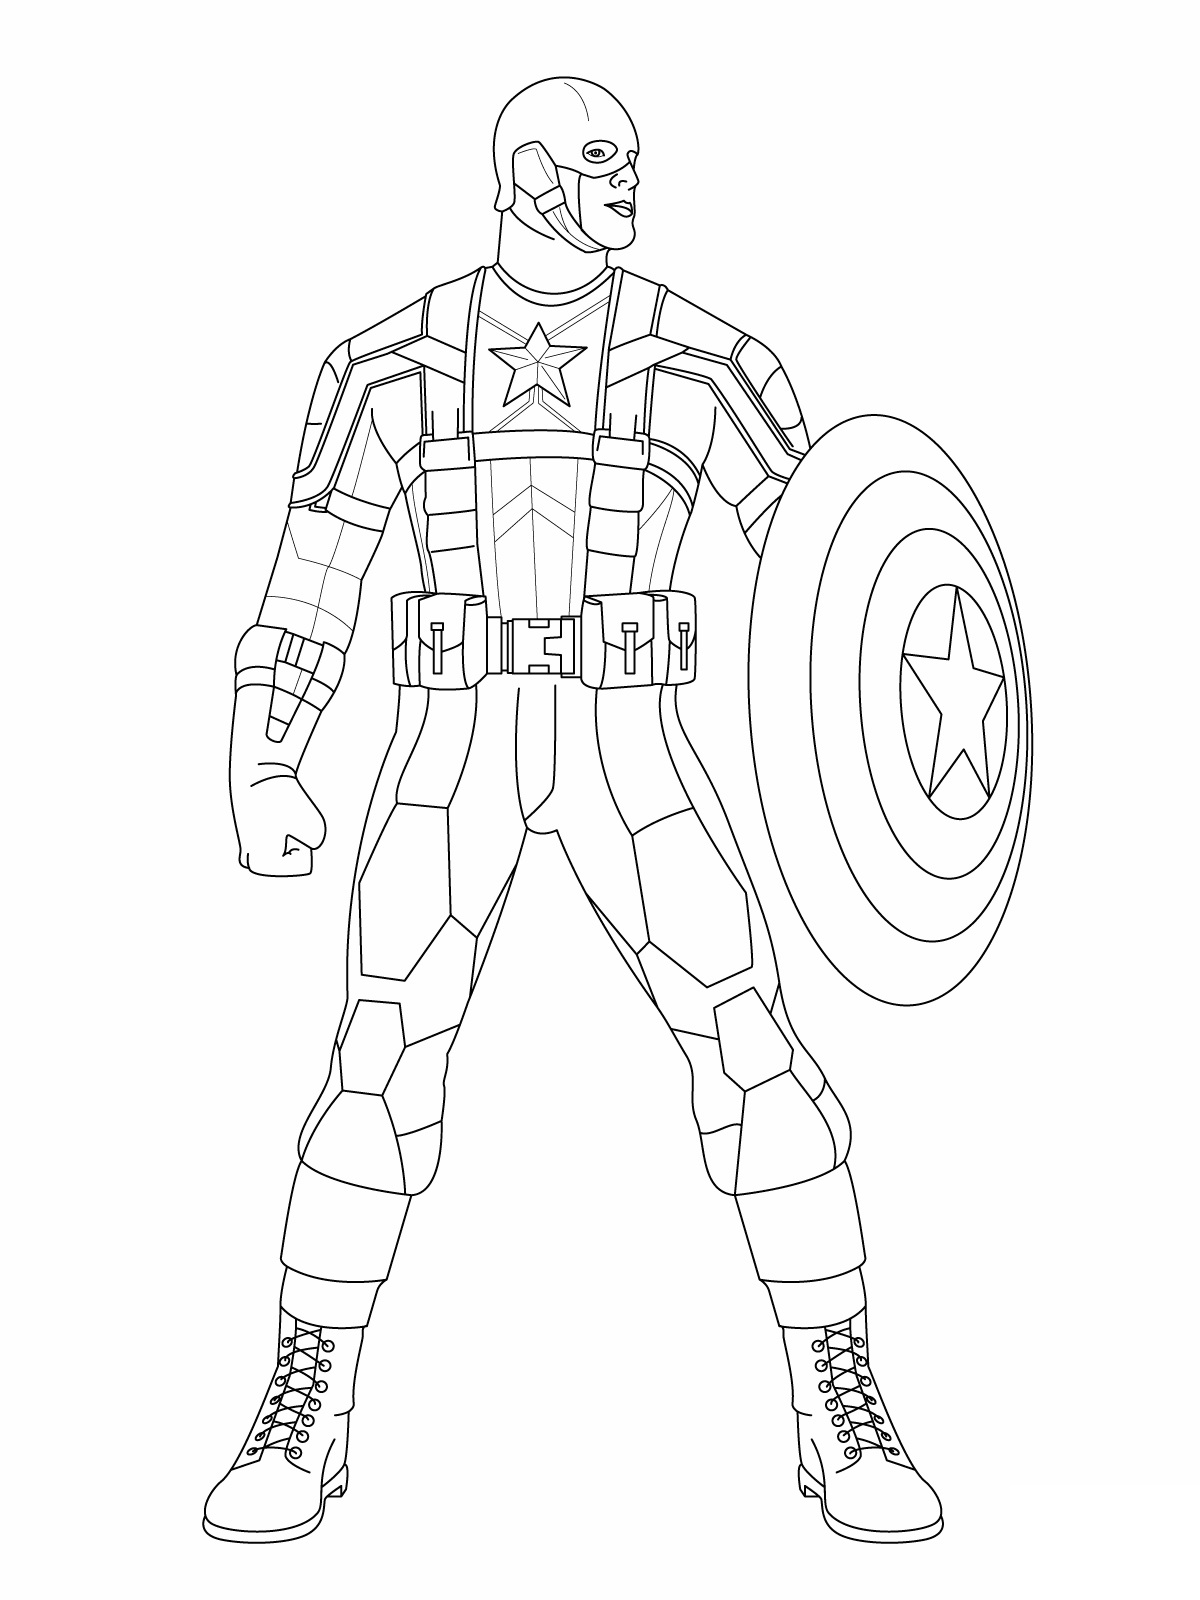 Captain America coloring page